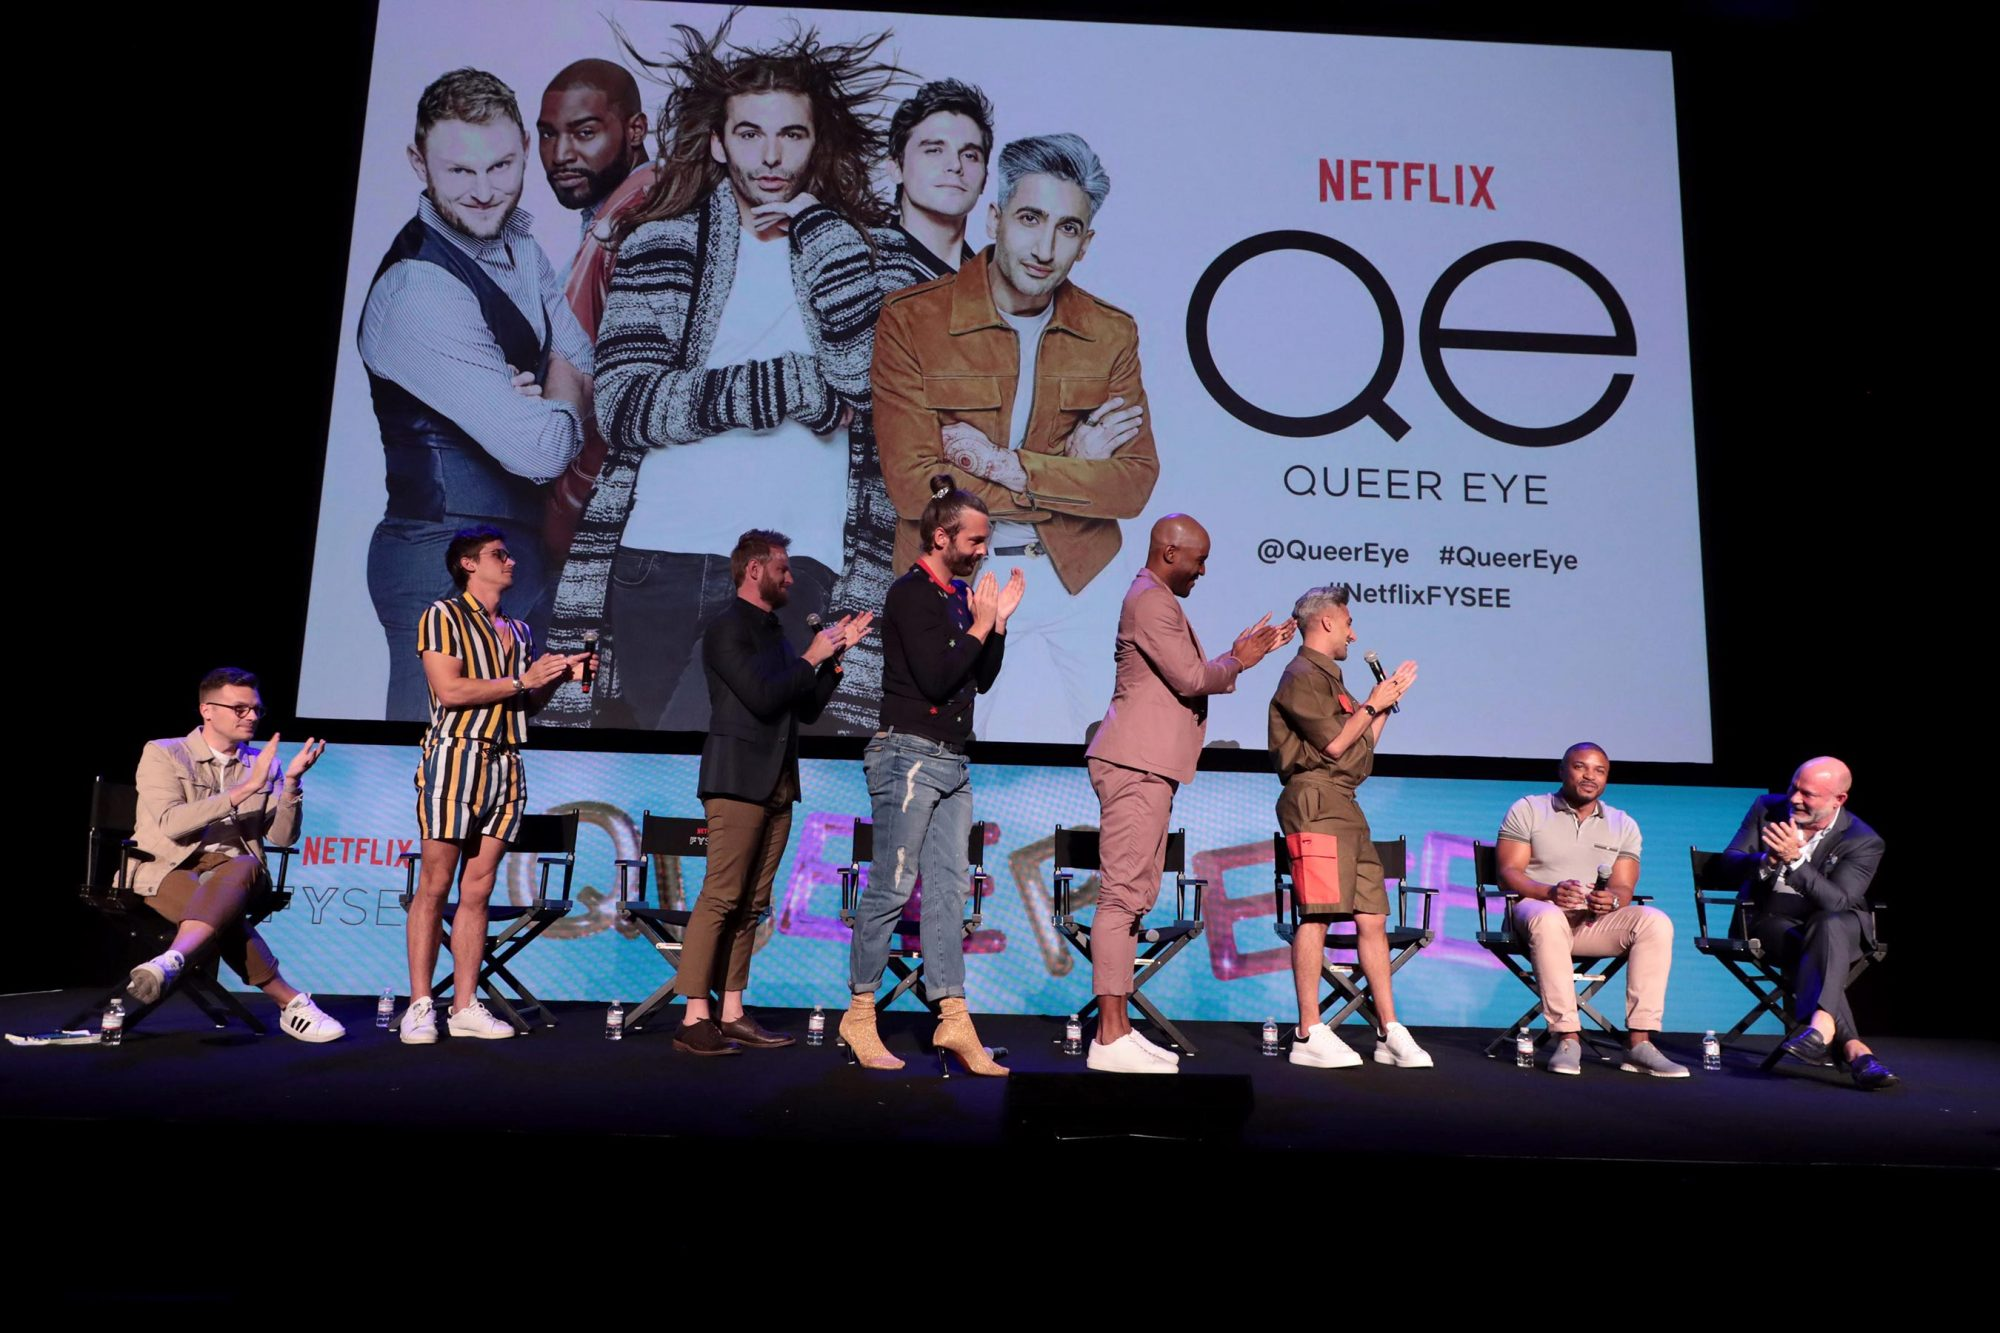 Netflix FYSEE Queer Eye Panel, Los Angeles, CA, USA - 31 May 2018